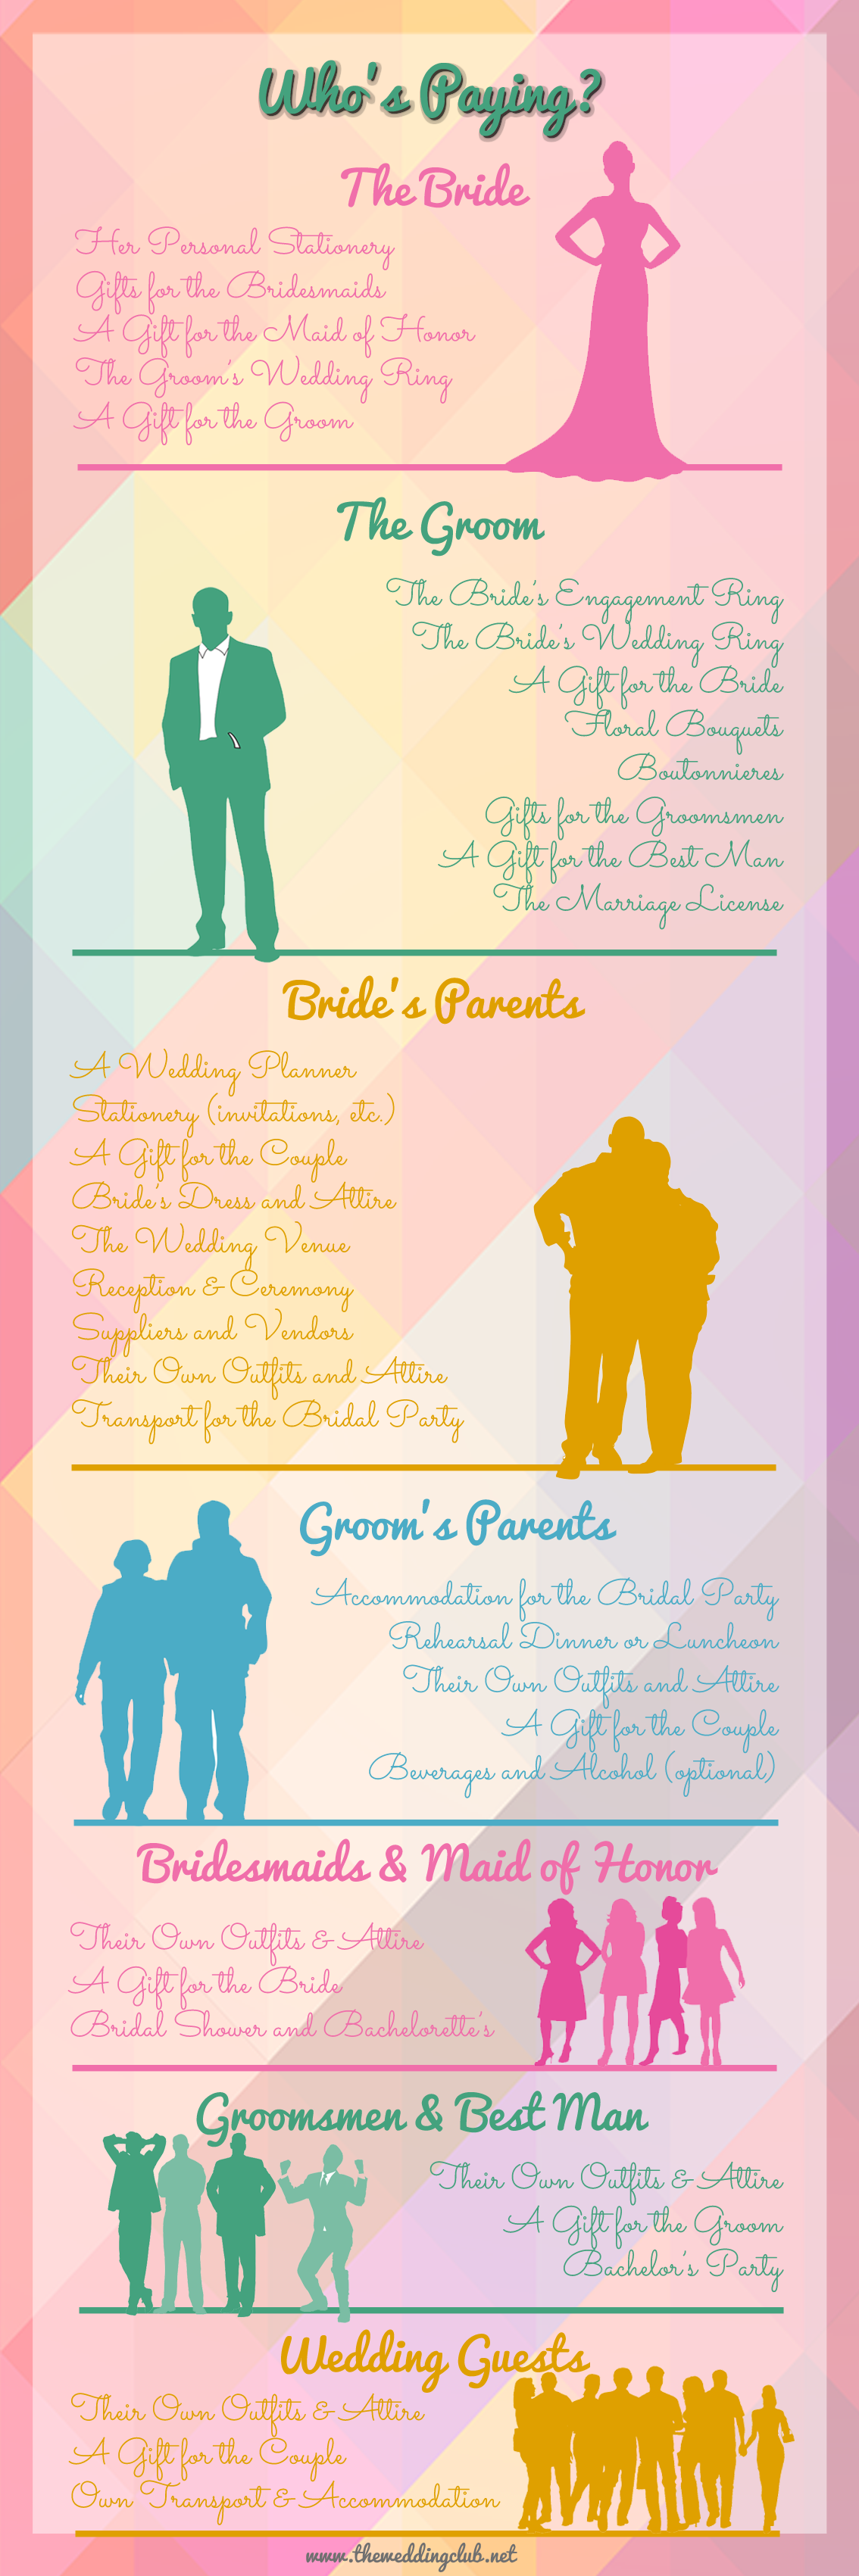 Who Pays For The Wedding.Who Normally Pays For What At A Wedding Infographic The Wedding